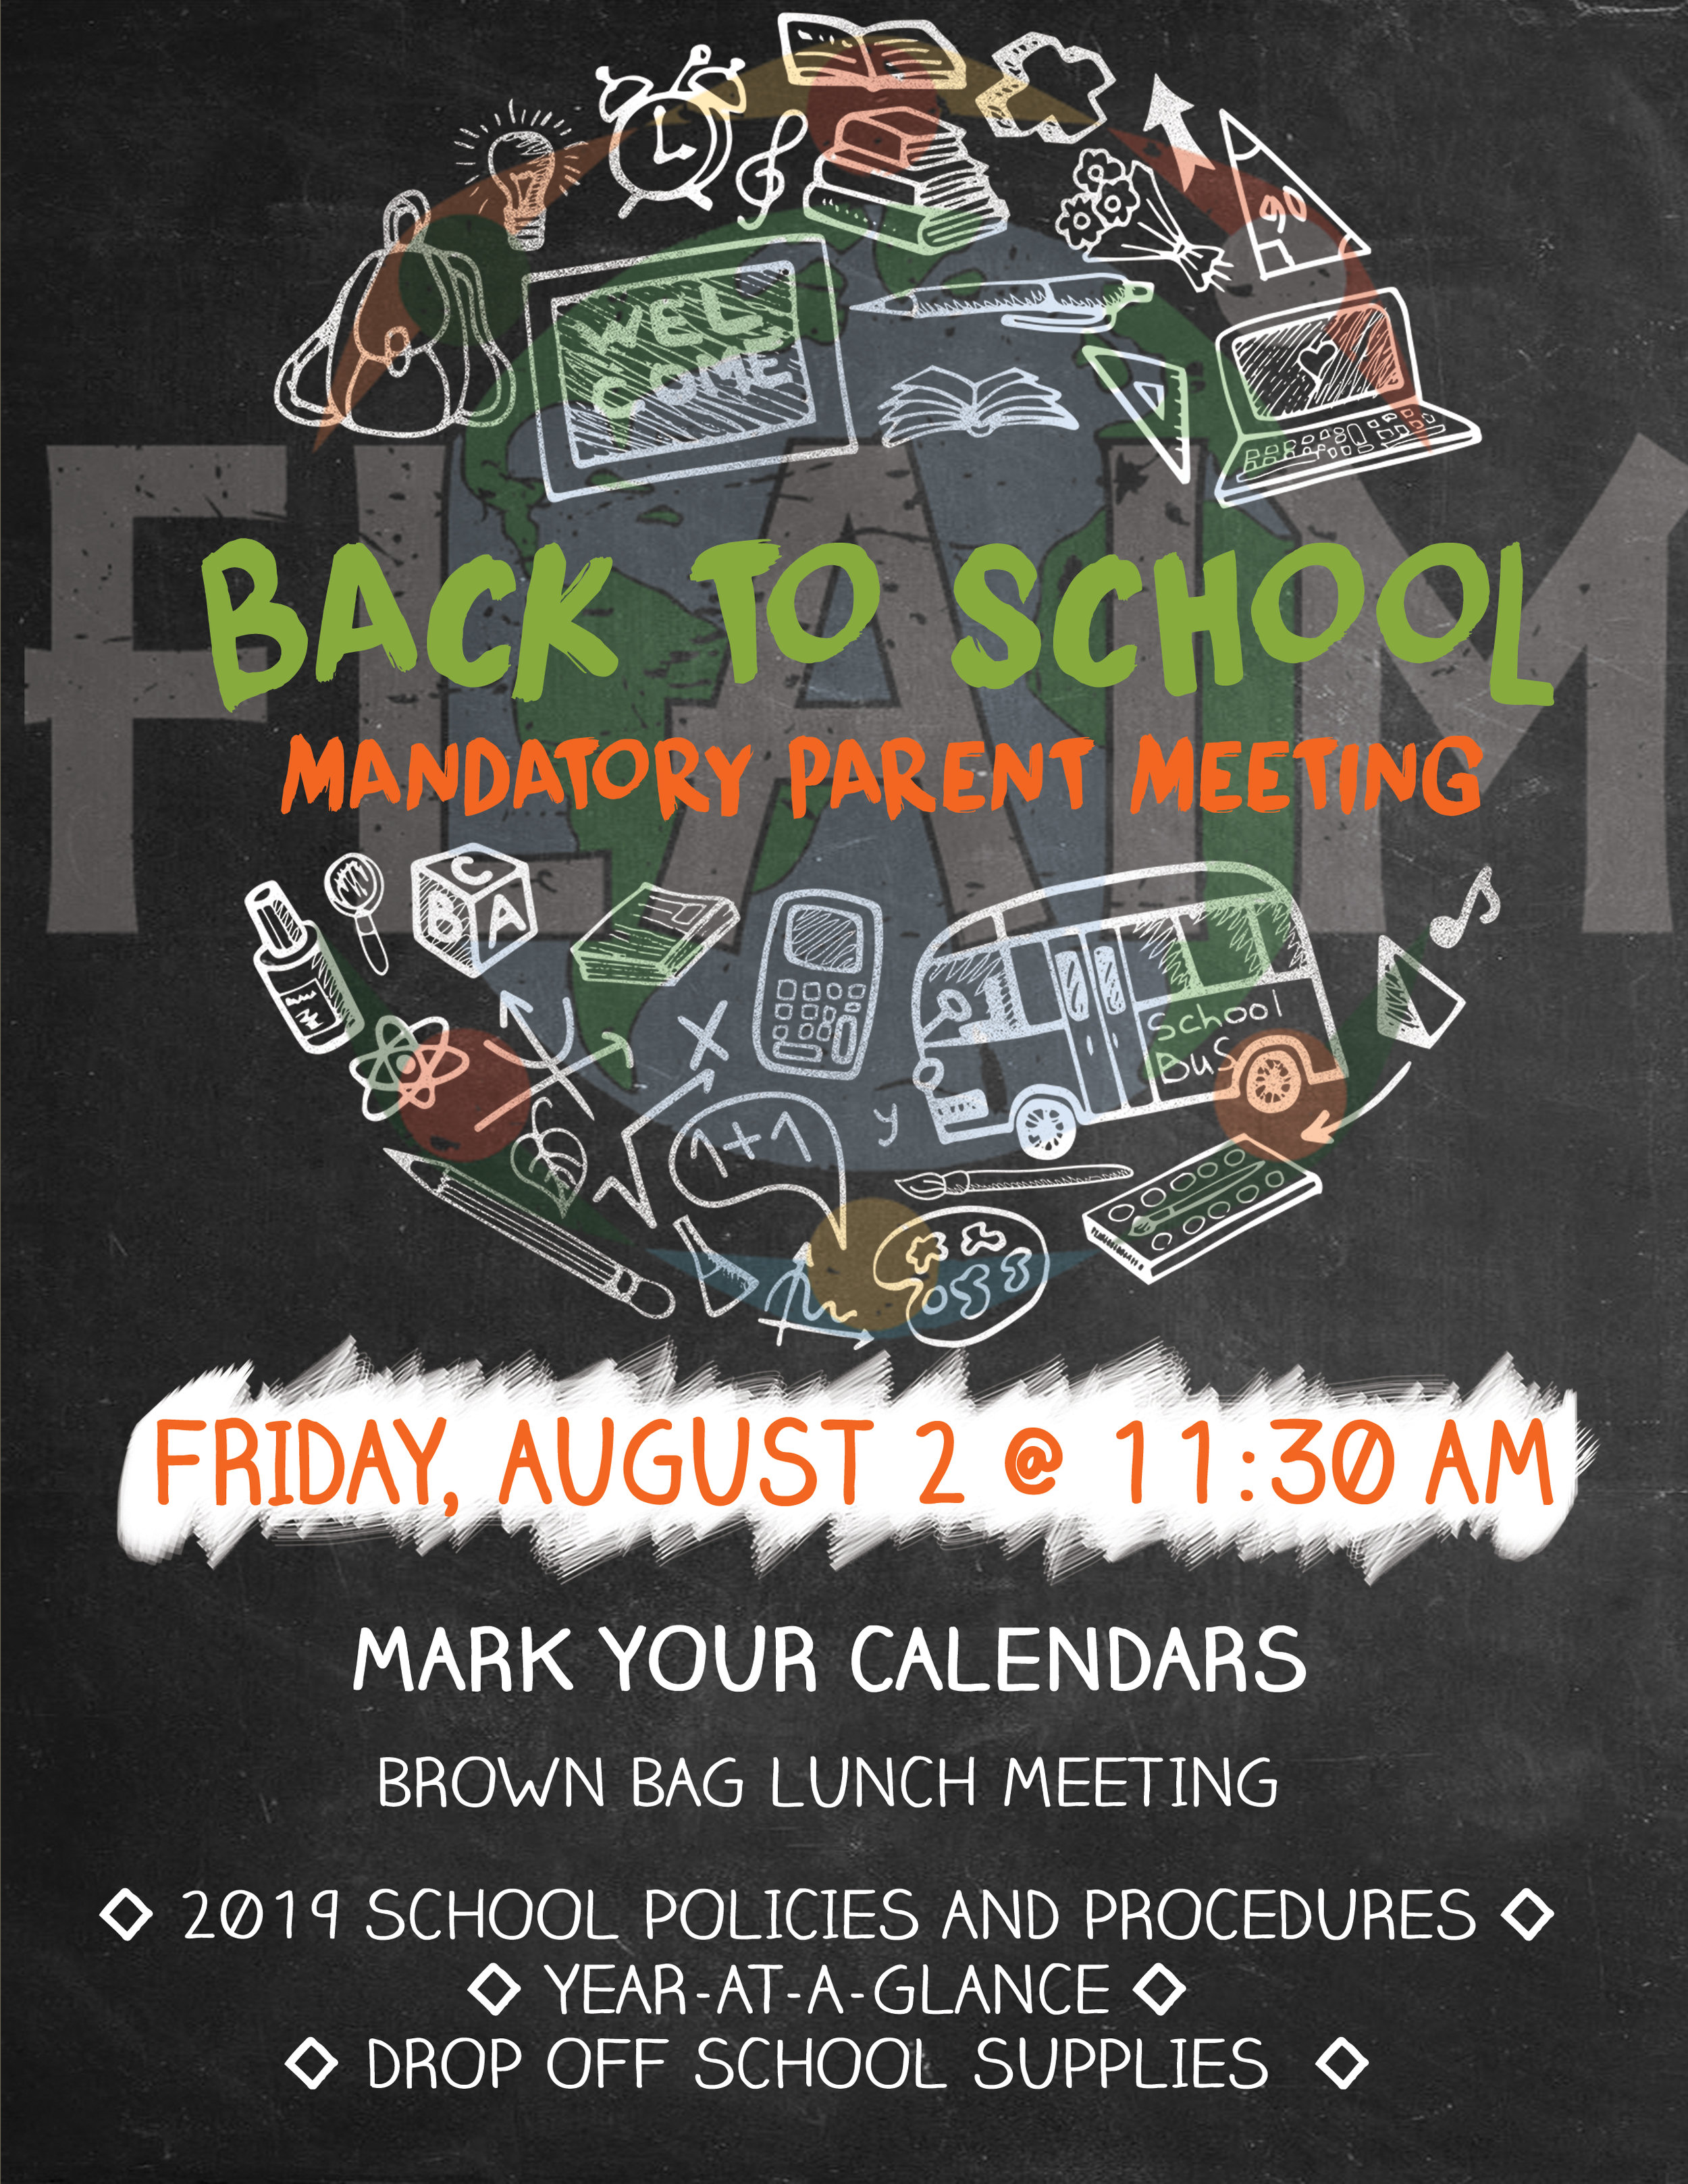 BacktoSchool_Flyer_DRAFT_053019.jpg